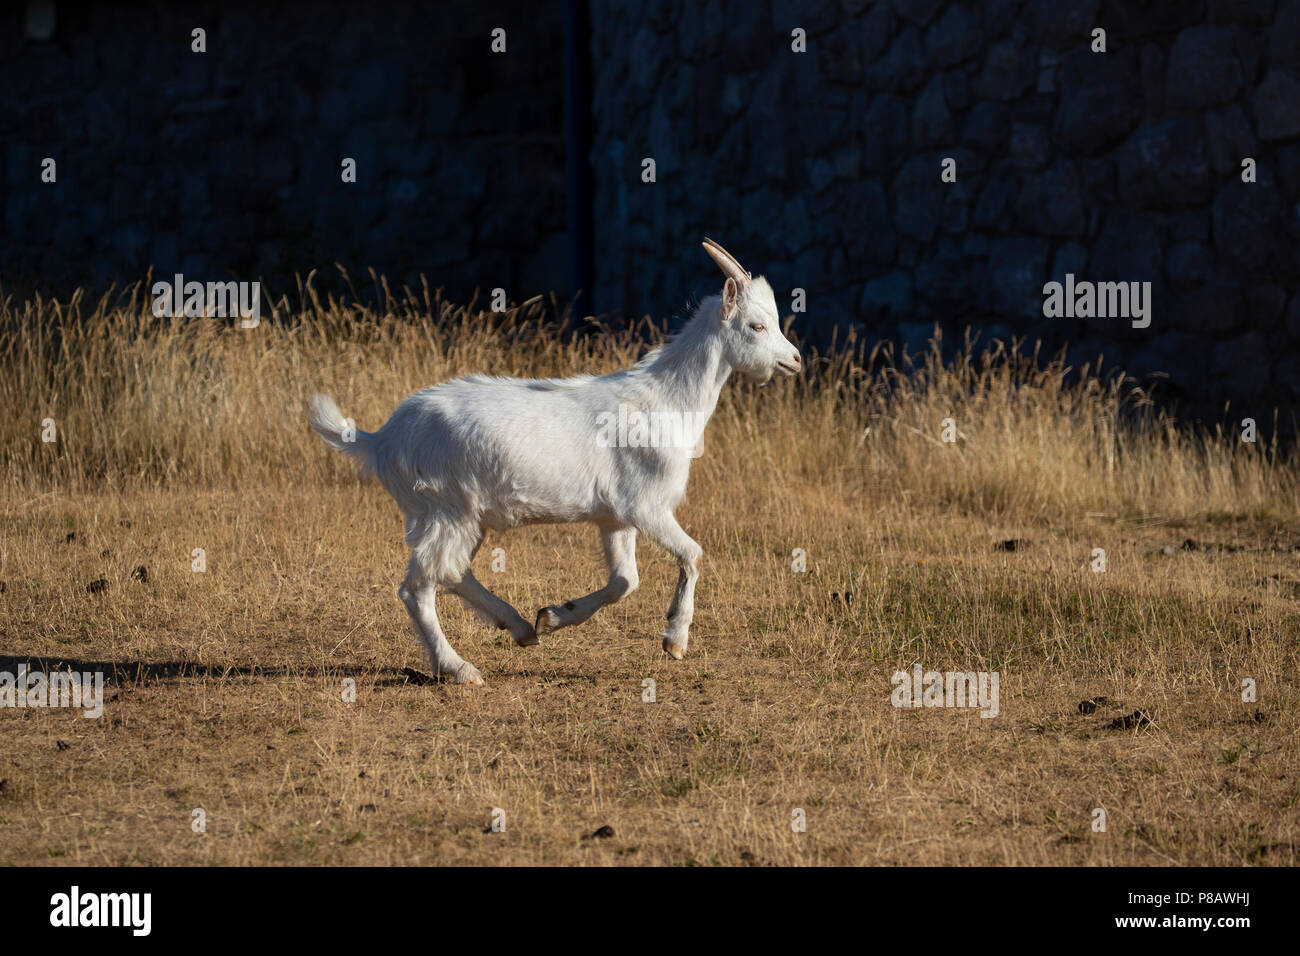 Young Great Orme Kashmiri Goat Capra Markhor trotting on the upper slopes of the Great Orme headland in Llandudno, North Wales - Stock Image